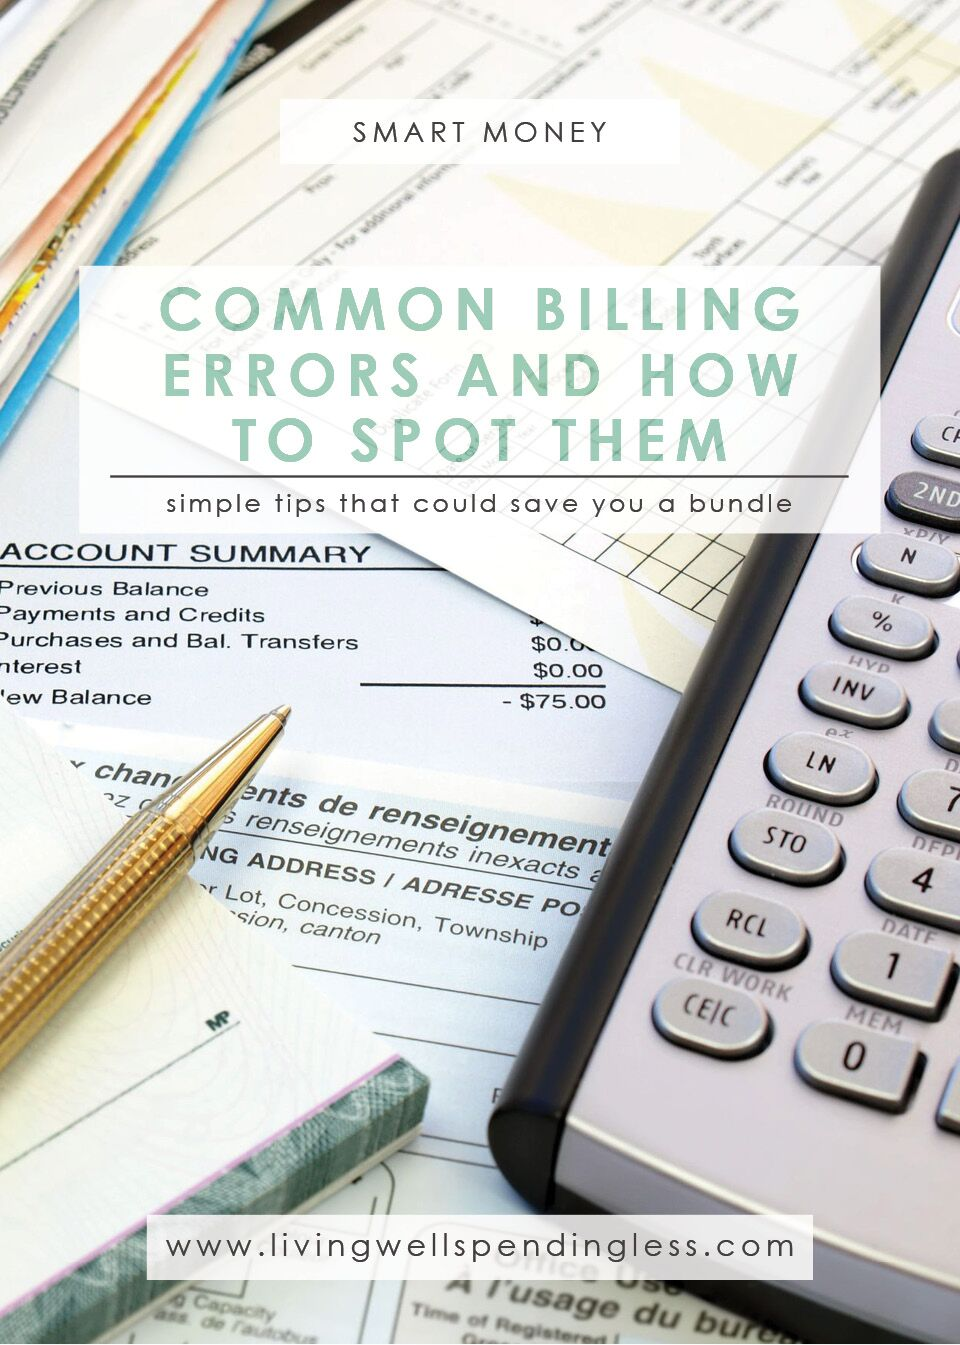 Common Billing Errors & How to Spot Them | Money Saving Tips | Smart Money | Identify and Dispute Errors